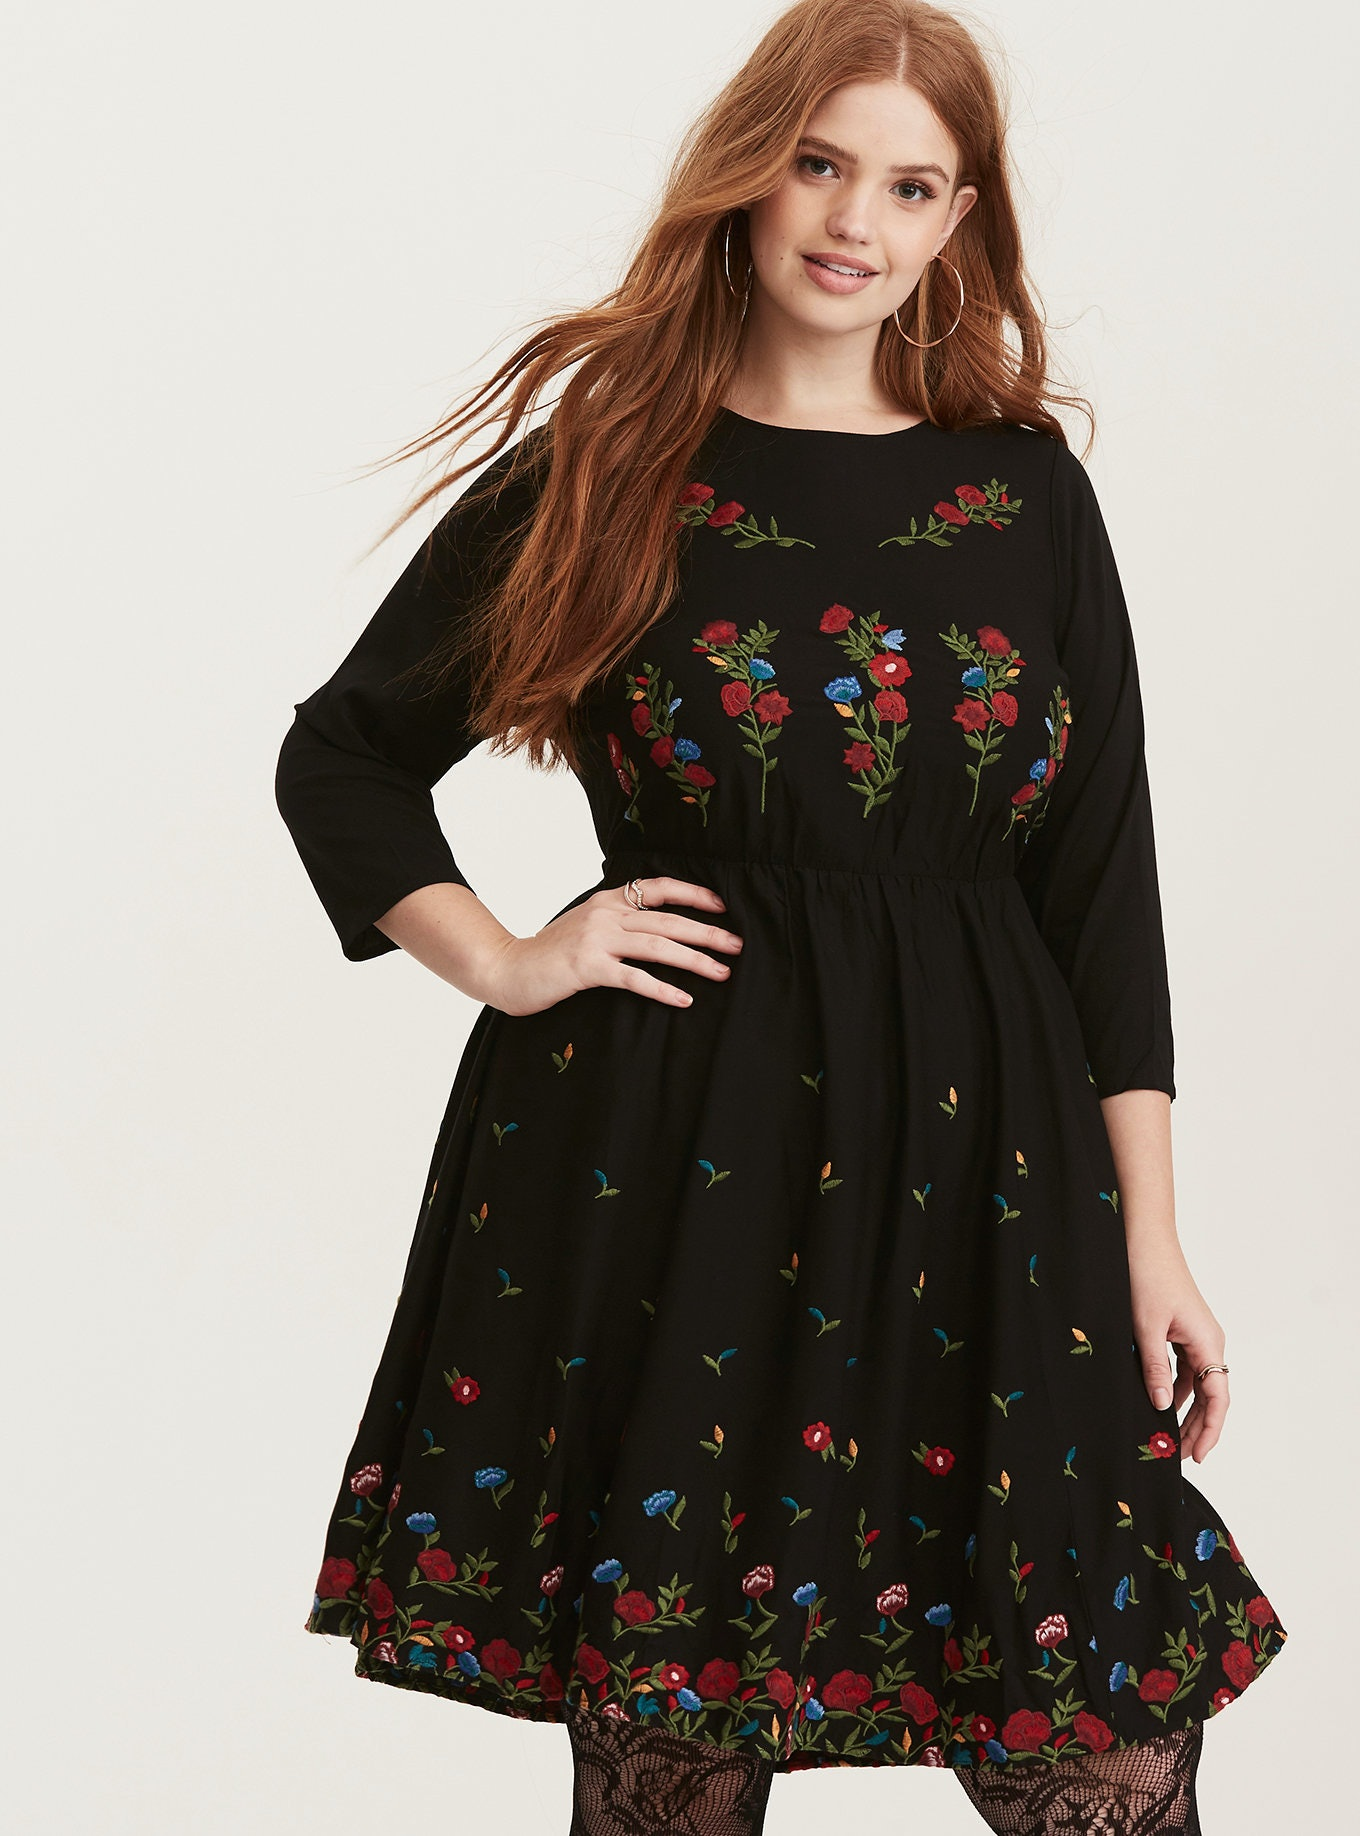 a507993dc2e 57 Plus-Size Holiday Dresses That Will Make You Look Forward To Seeing Your  Family